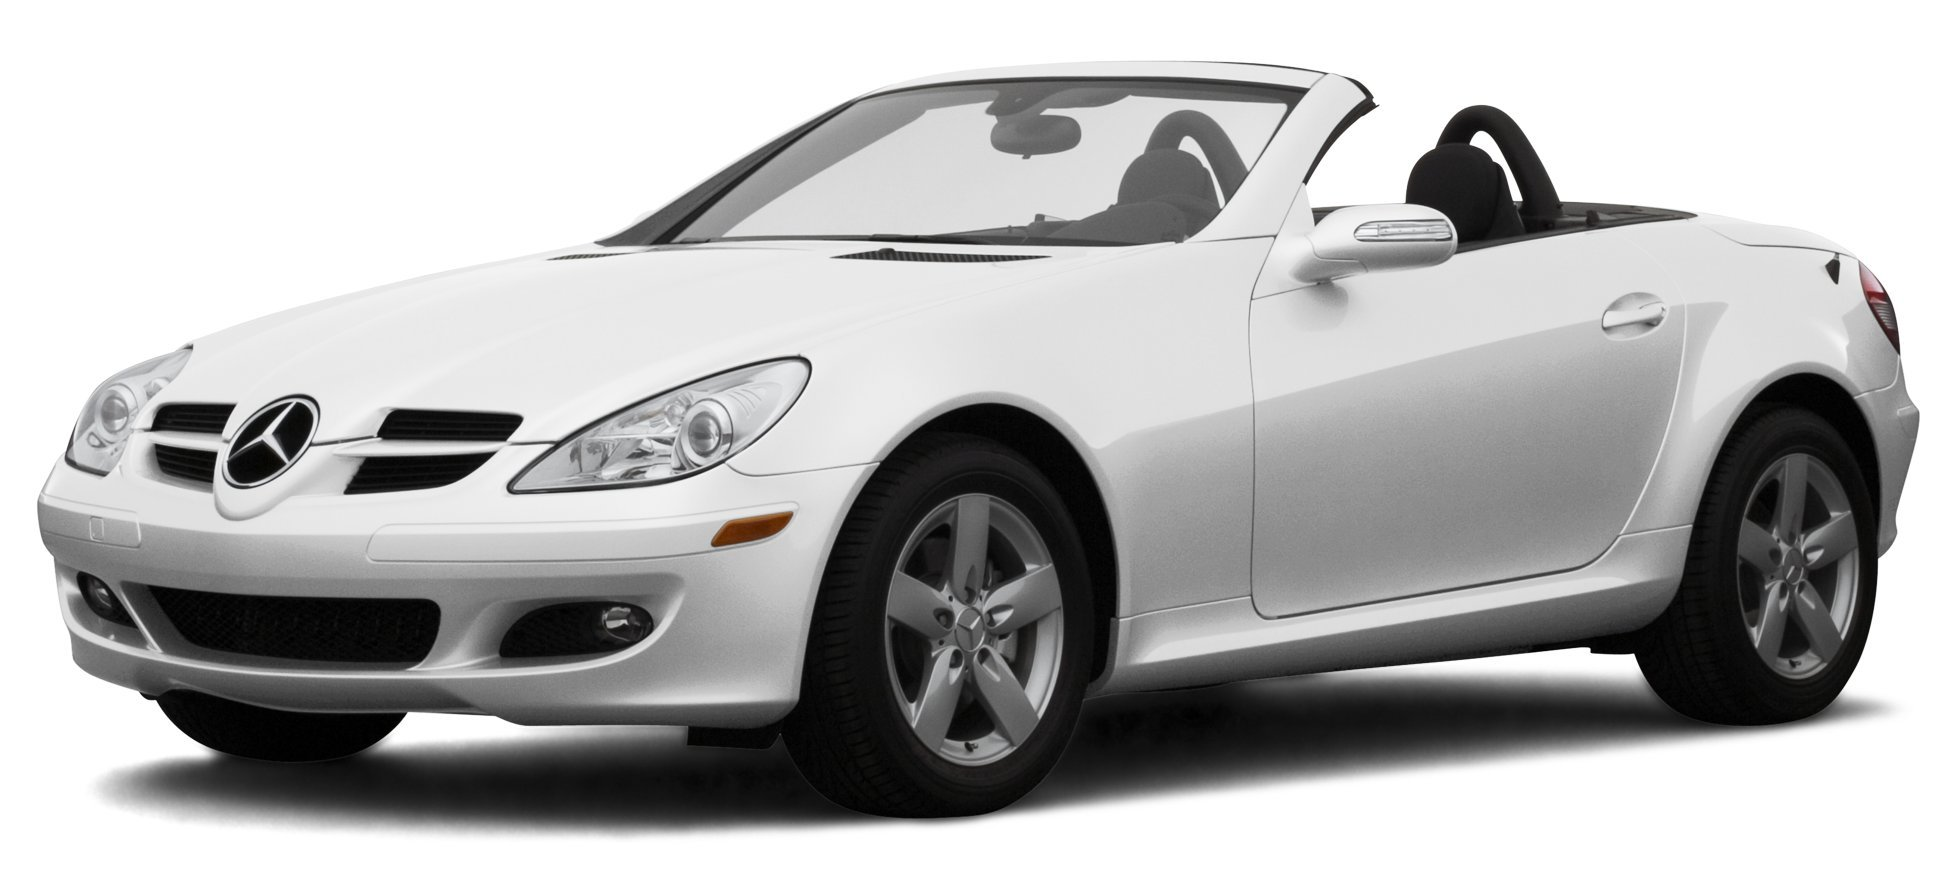 2007 Porsche Boxster, 2-Door Roadster, 2007 Mercedes-Benz SLK280 3.0L, 2-Door Roadster ...